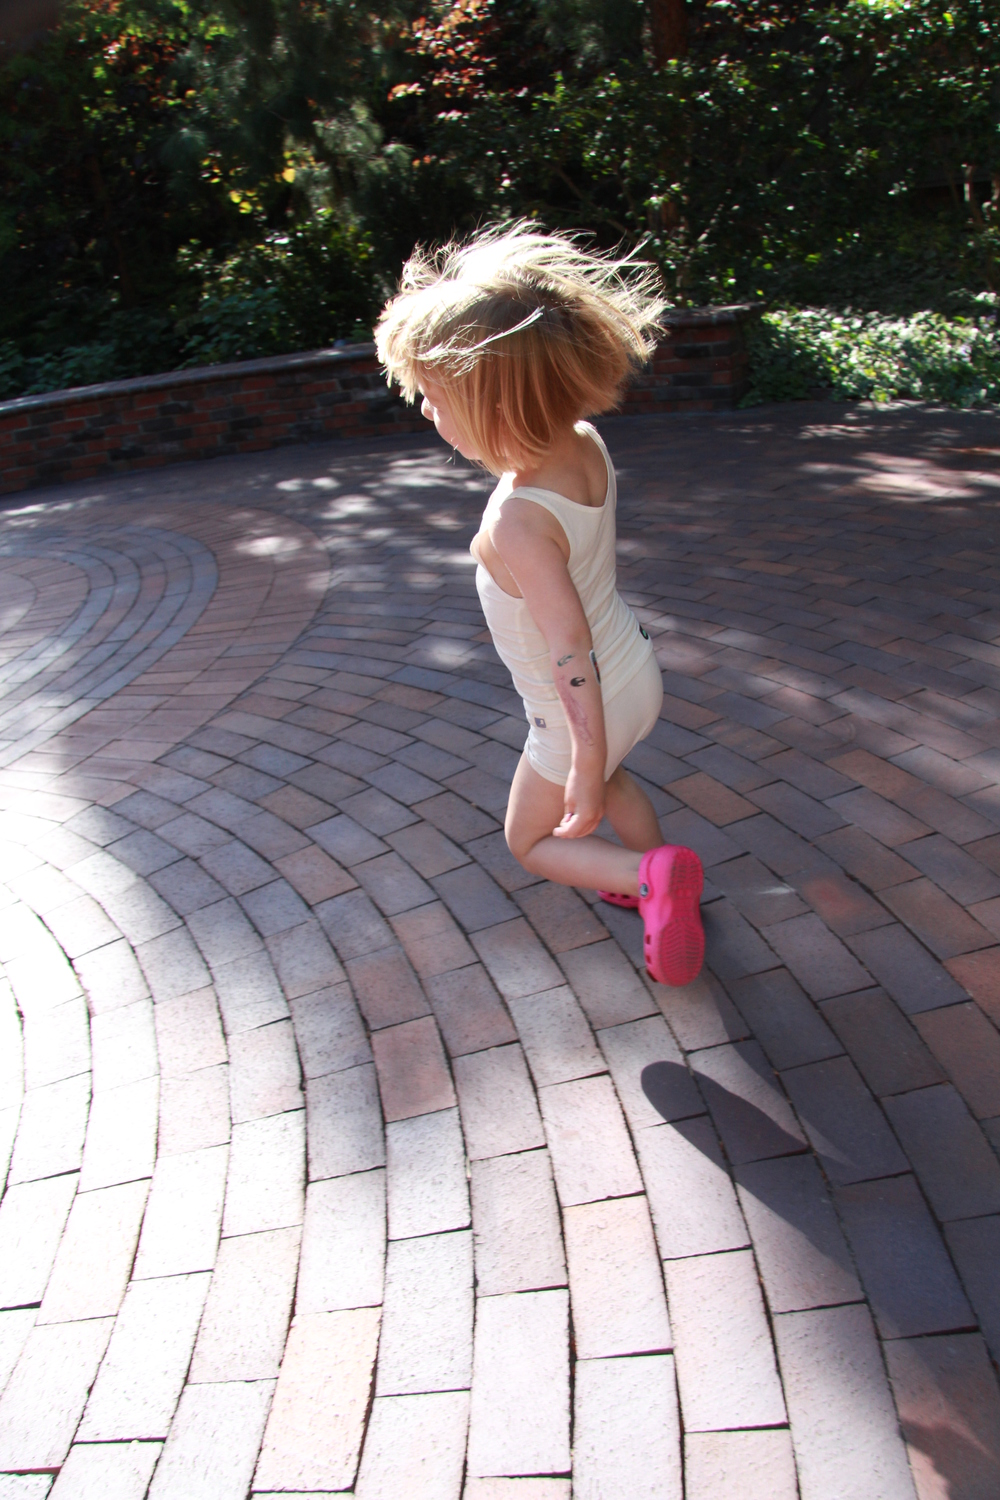 Coco is moving quite freely in her cute Dino Play Wear and pink crocs!